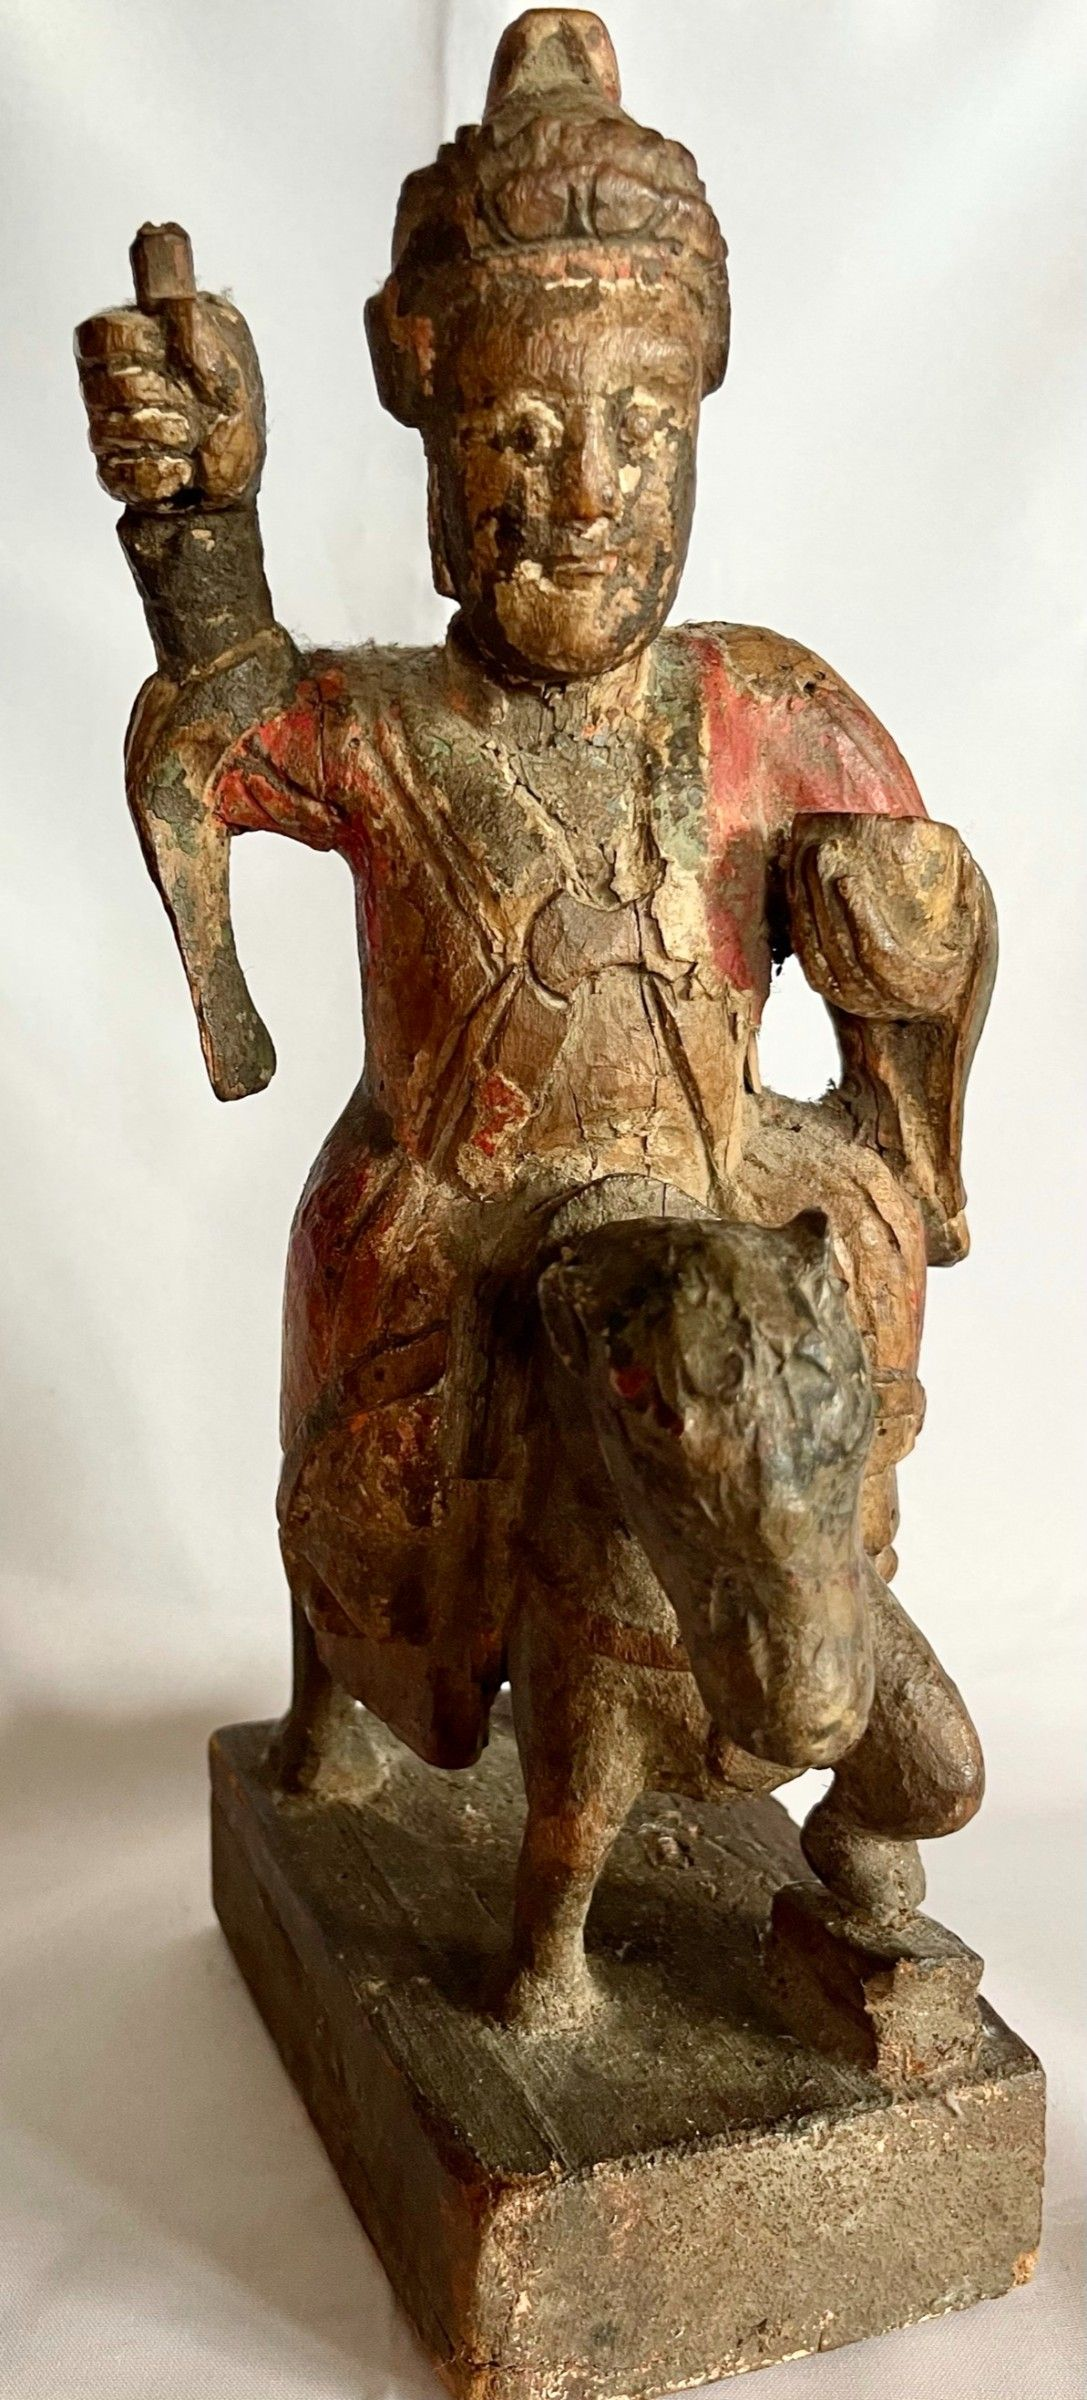 Antique Chinese Wood Sculpture of a General on Horseback